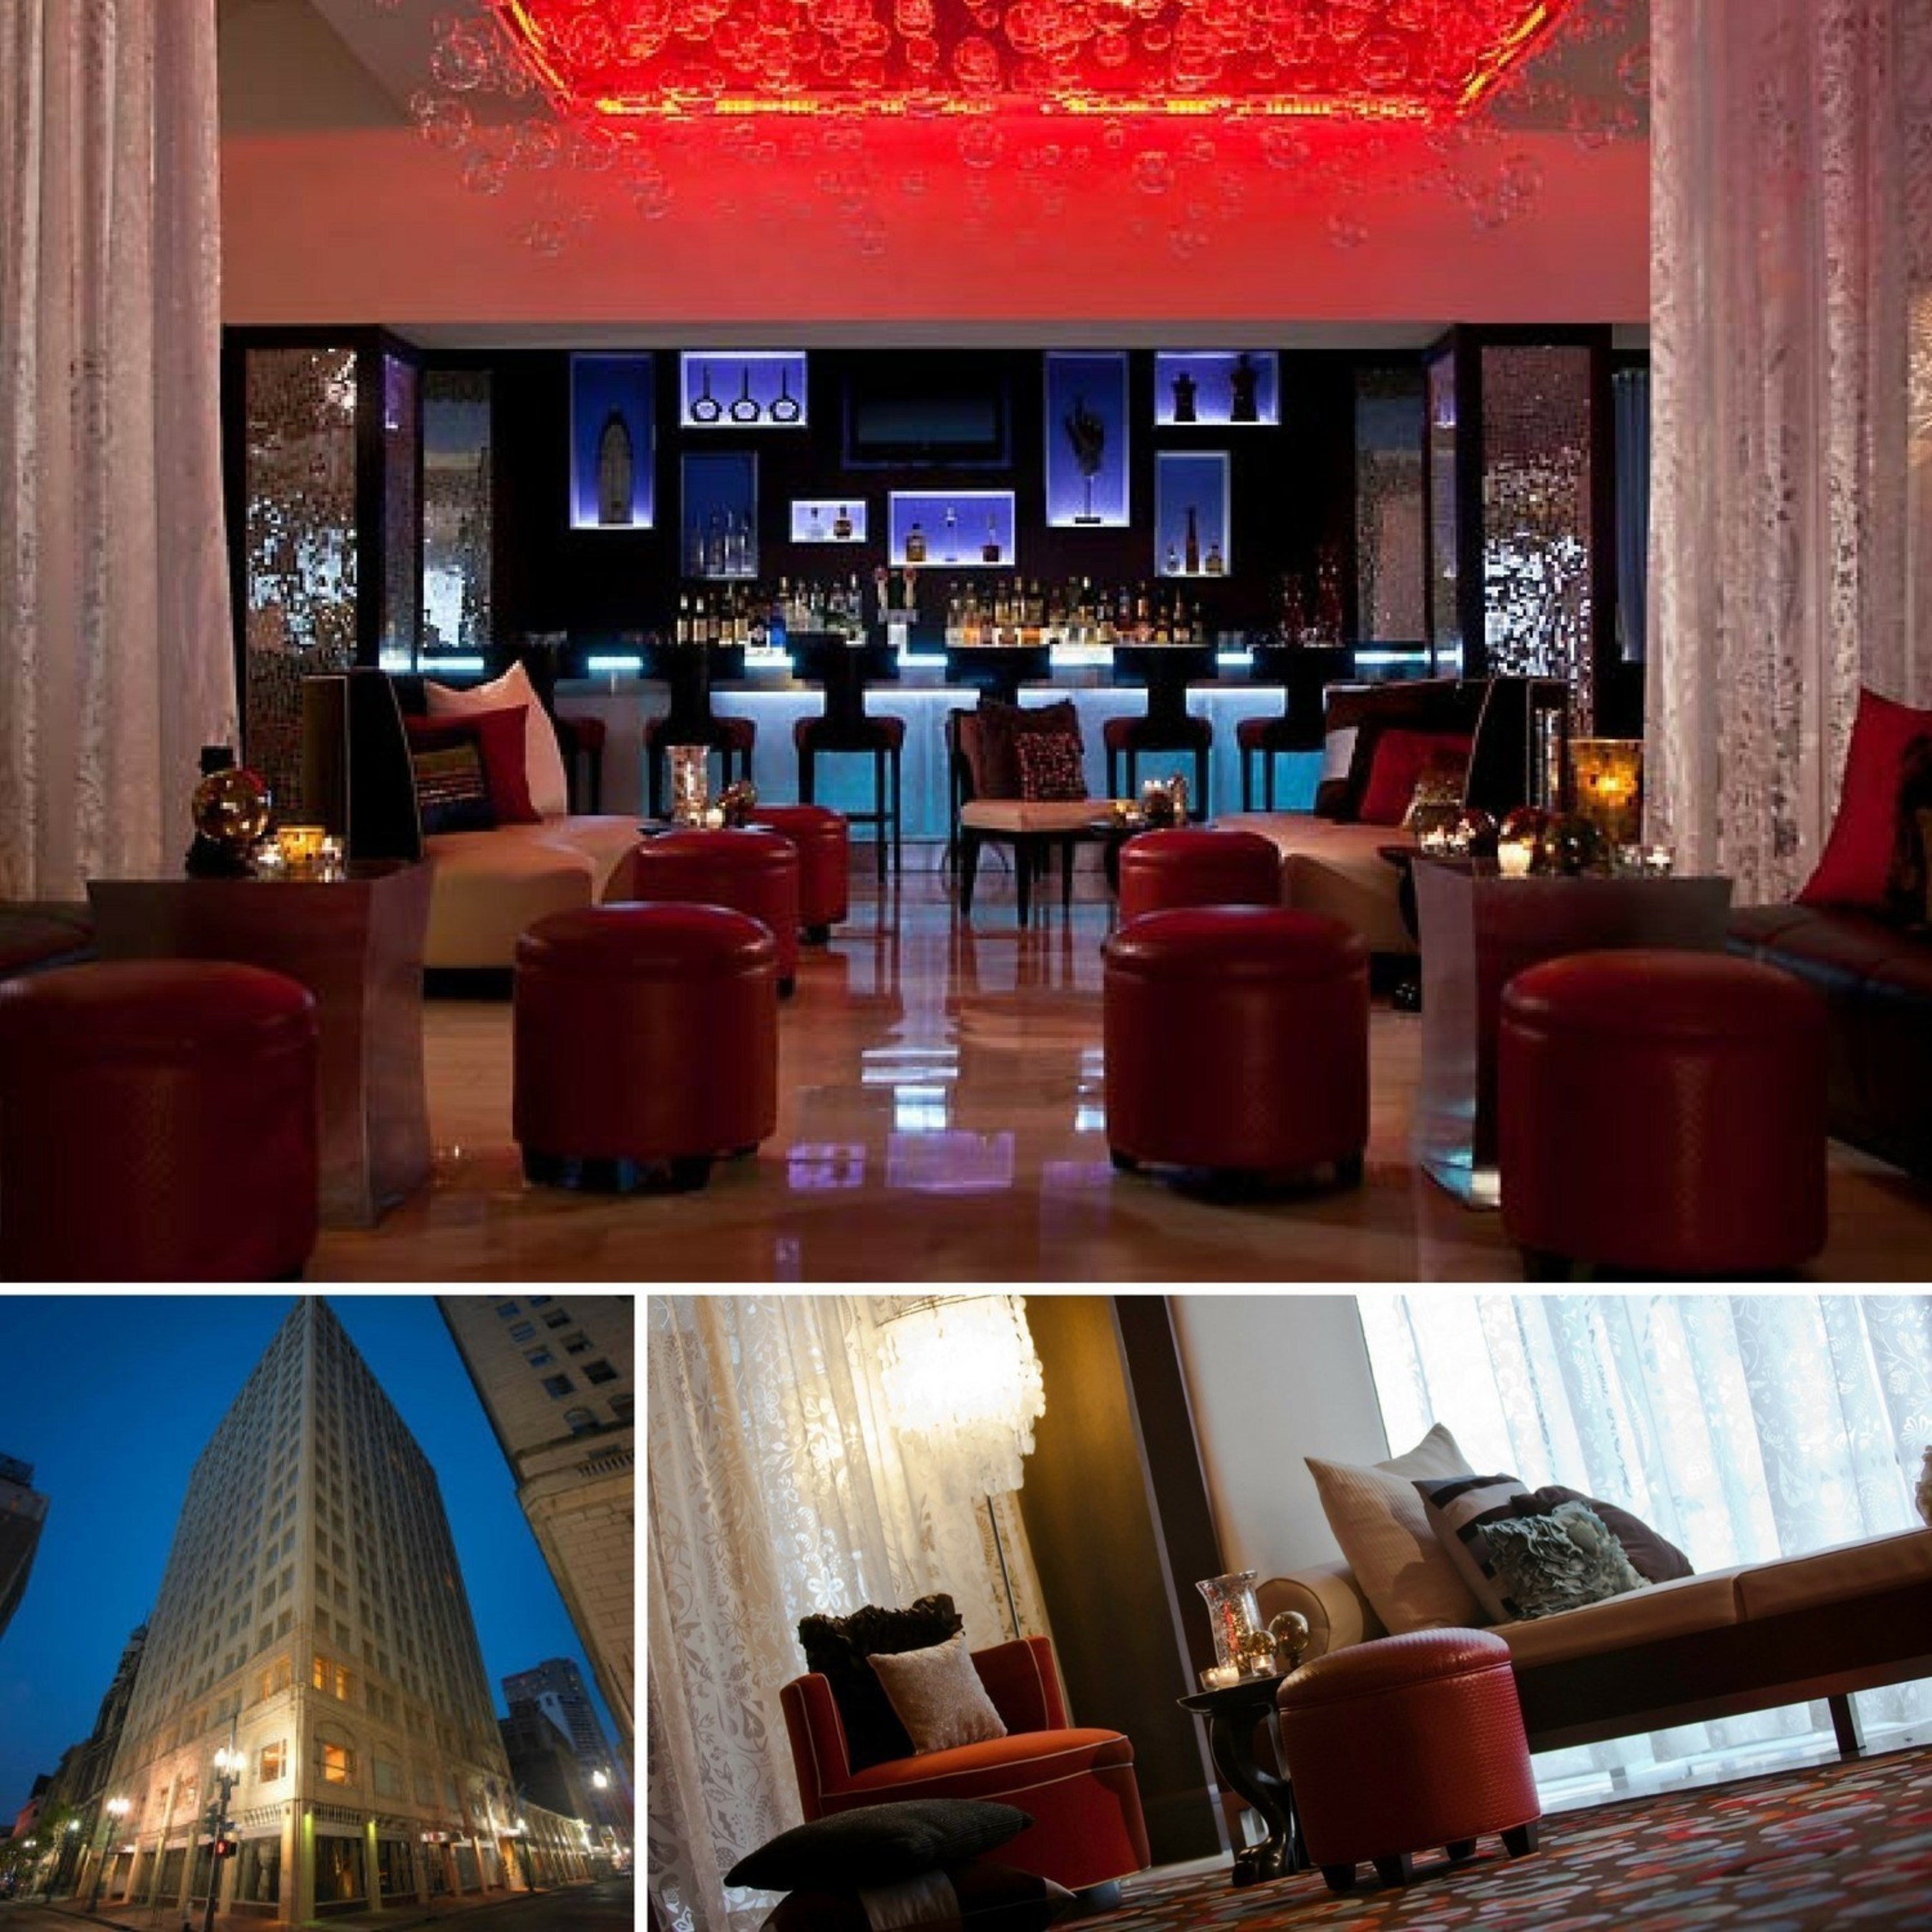 Renaissance New Orleans Pere Marquette French Quarter Area Hotel is offering travelers the Sip and Savor the Big Easy: Two Cocktails Per Night! Package this holiday season. To seize this deal, visitors need to make a reservation by December 30, 2016 and use the promotional code ZJL. For more information, visit www.marriott.com/MSYBR or call 1-504-525-1111.